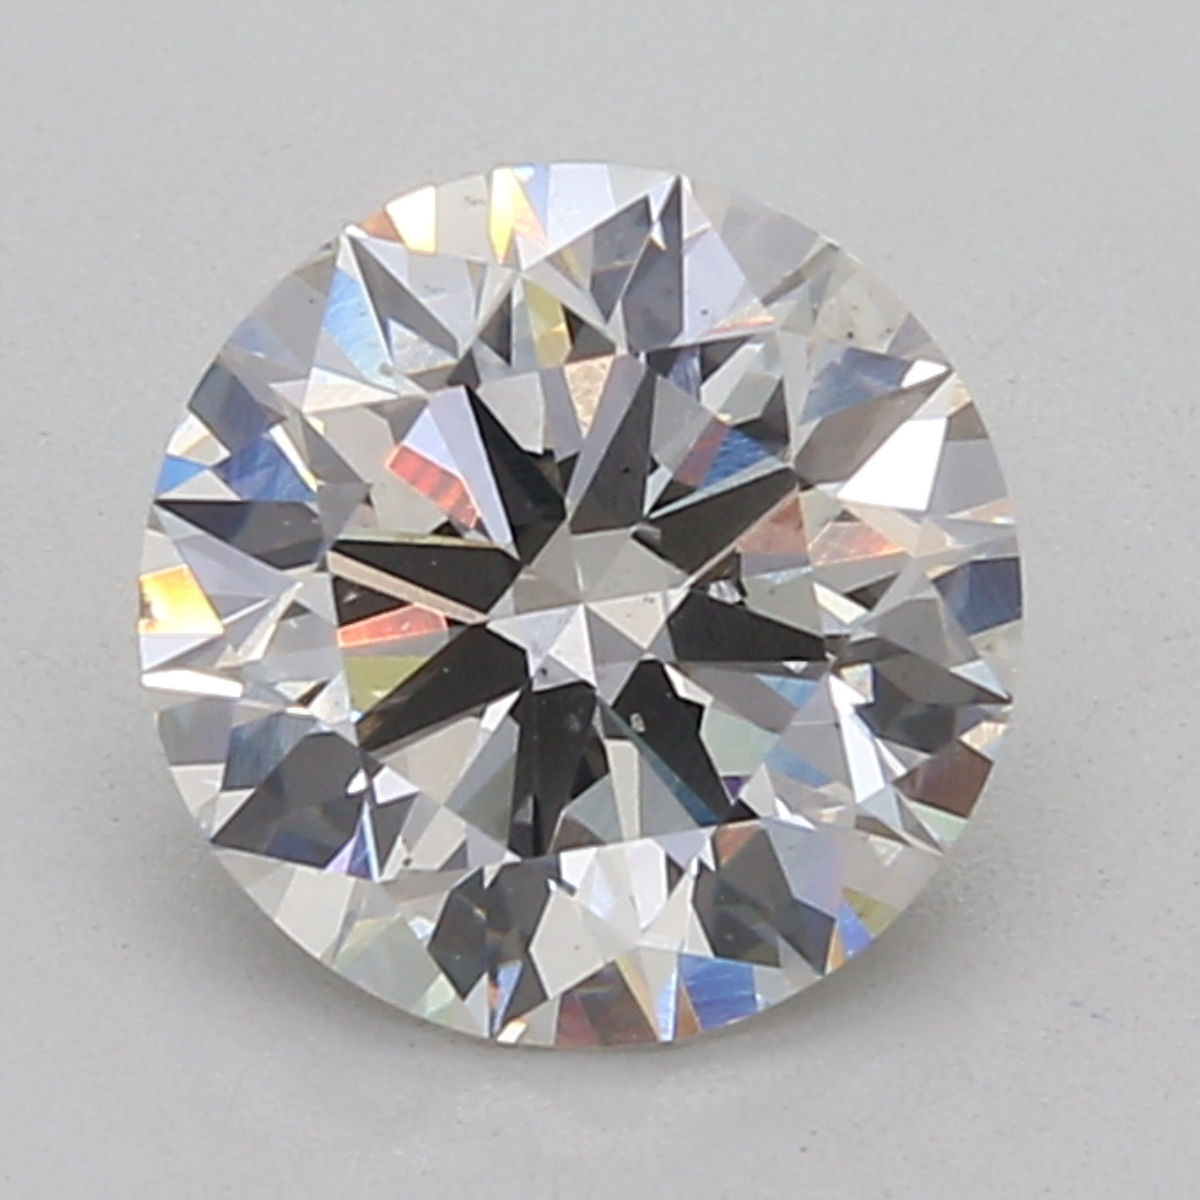 Round Cut 2.52 Carat H Color Si1 Clarity Sku Lg1227125